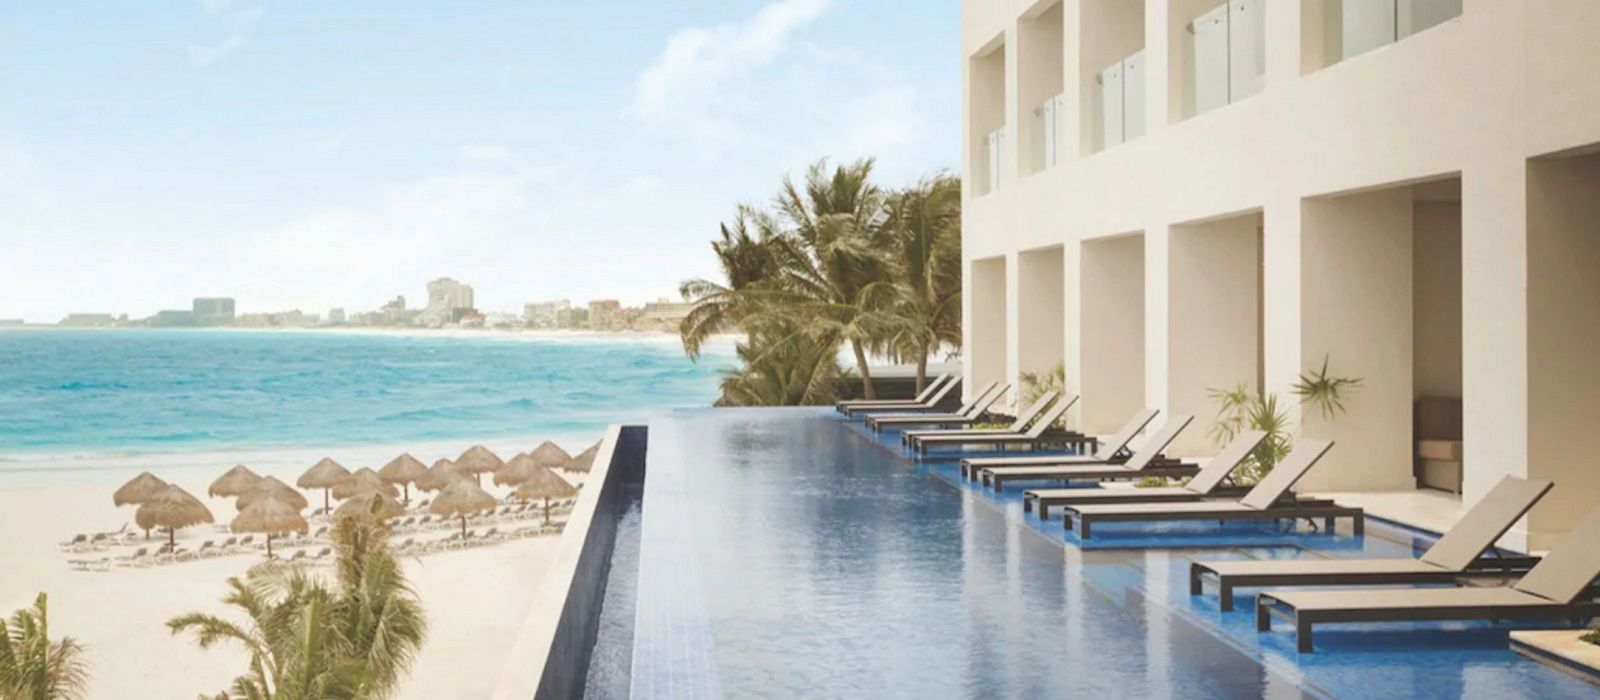 Hotel Hyatt Ziva Cancun Mexiko